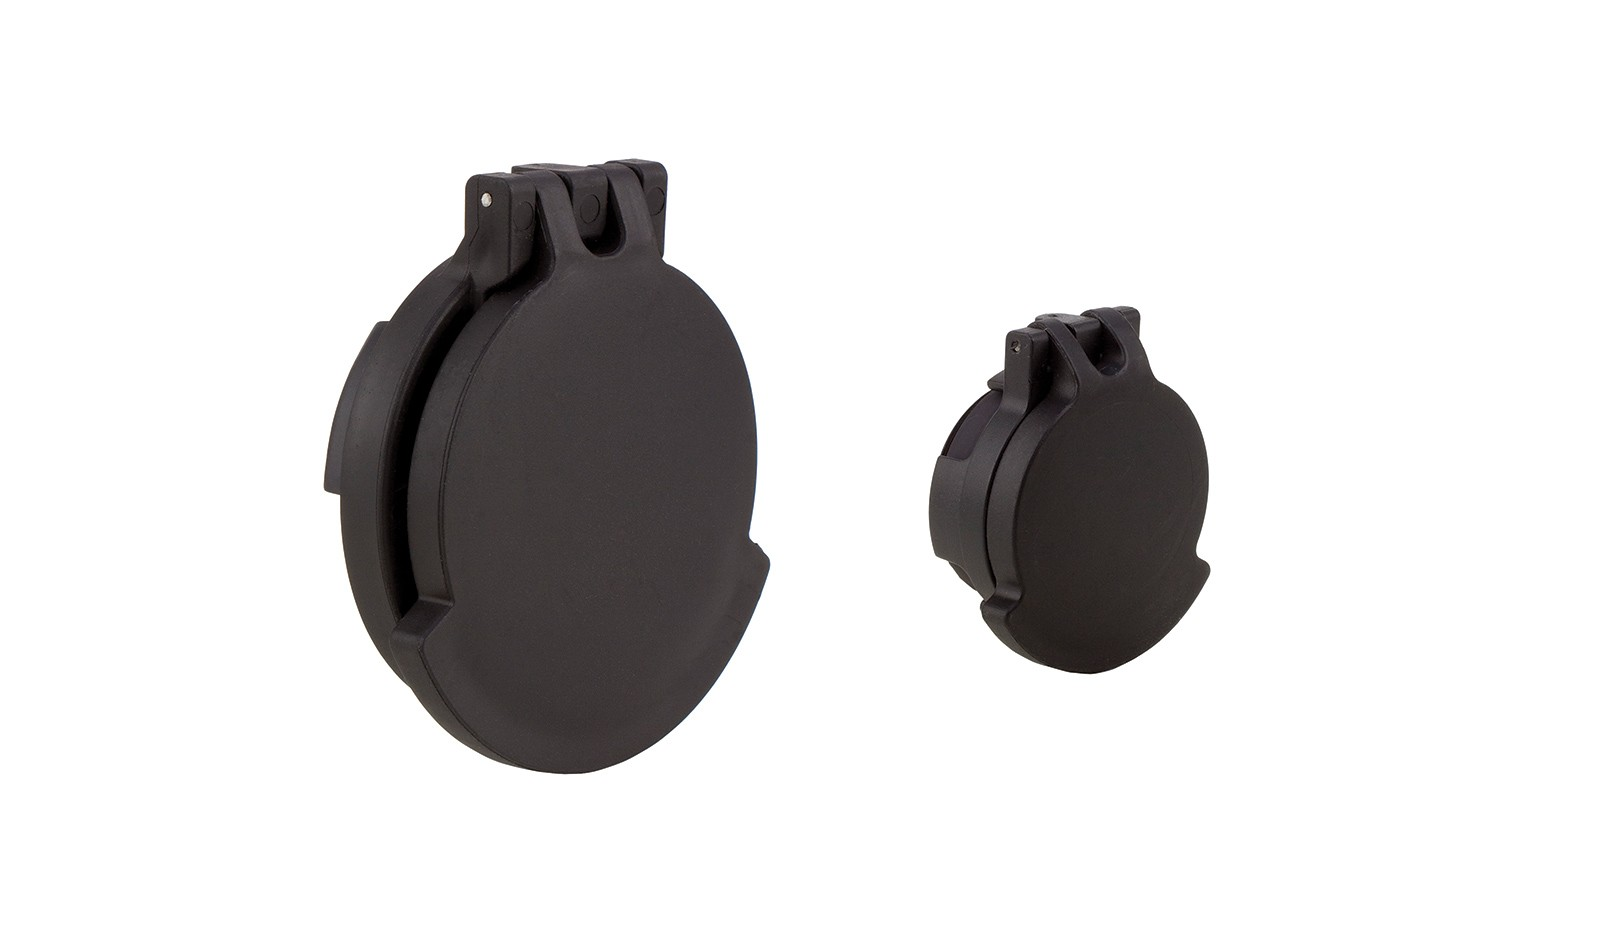 Tenebraex® Flip Cap Set for 1-6x24 VCOG®